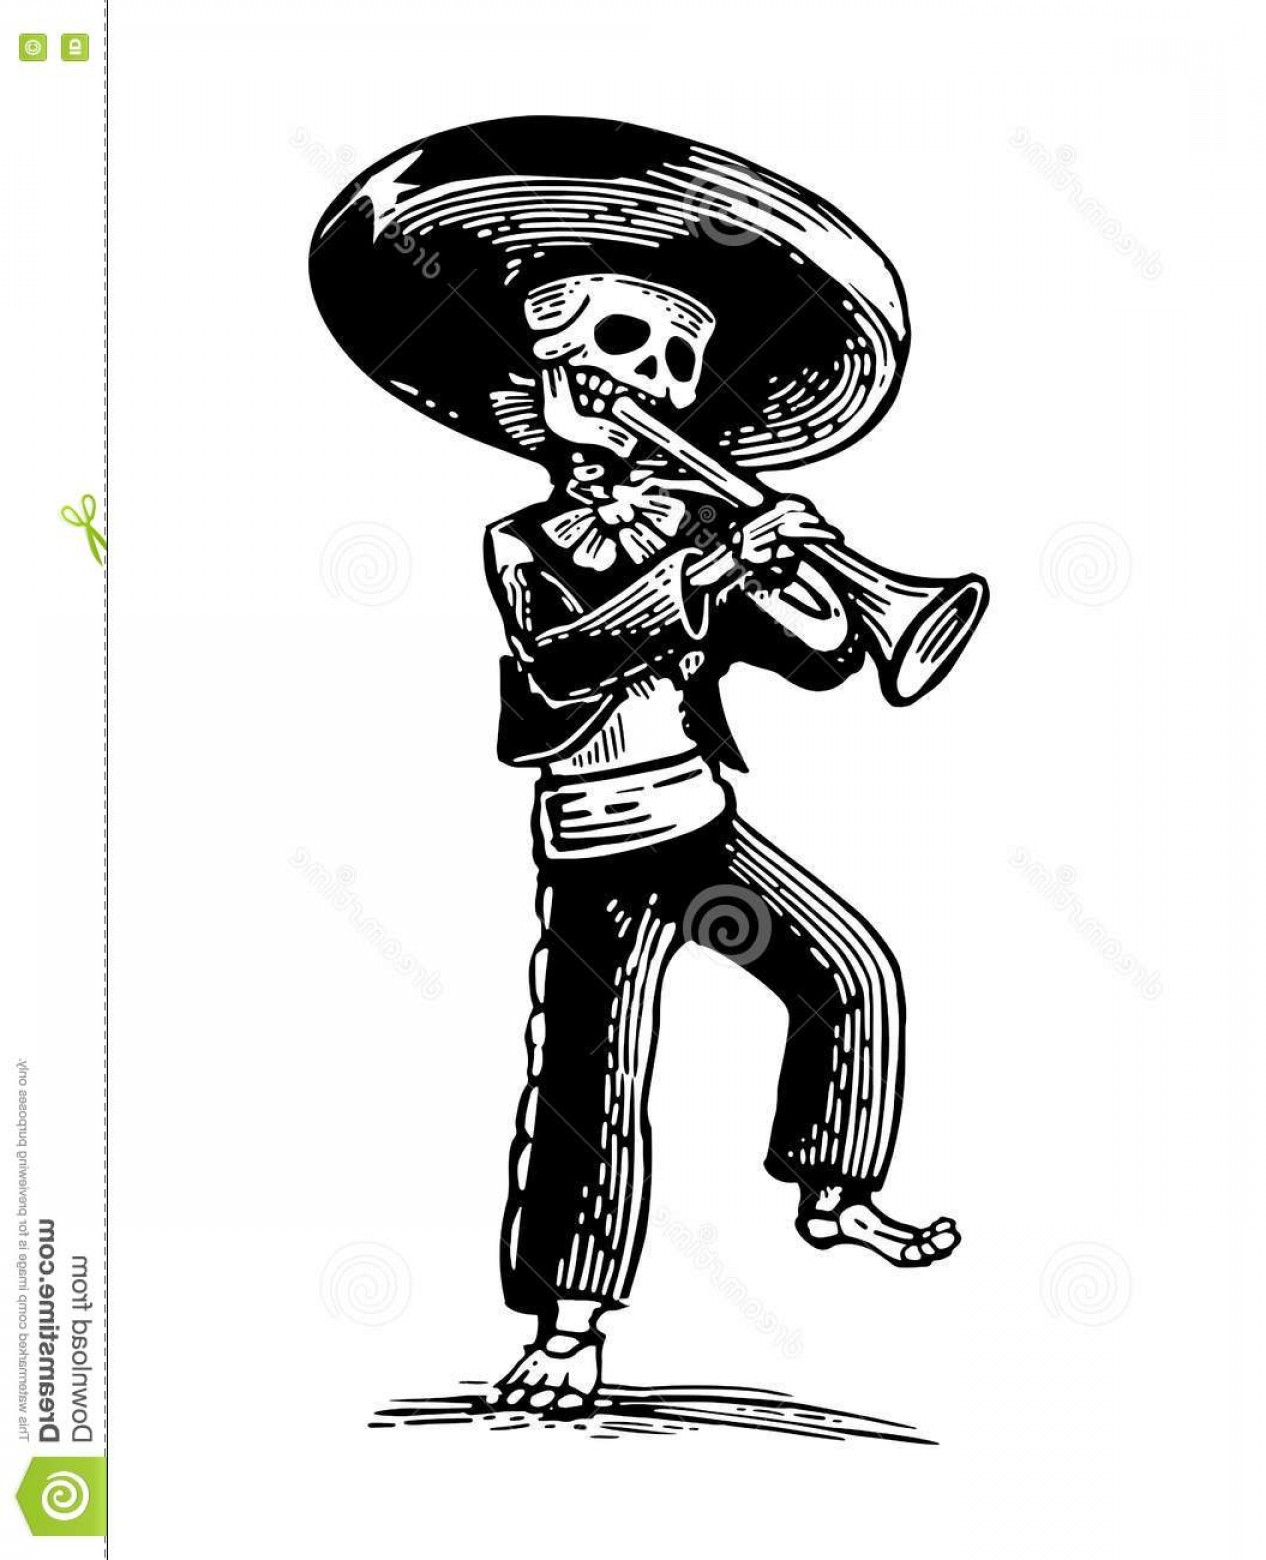 Vector Skeleton Circle Dancing: Stock Illustration Day Dead Dia De Los Muertos Skeleton Mexican National Costumes Dance Play Trumpet Vector Hand Drawn Image